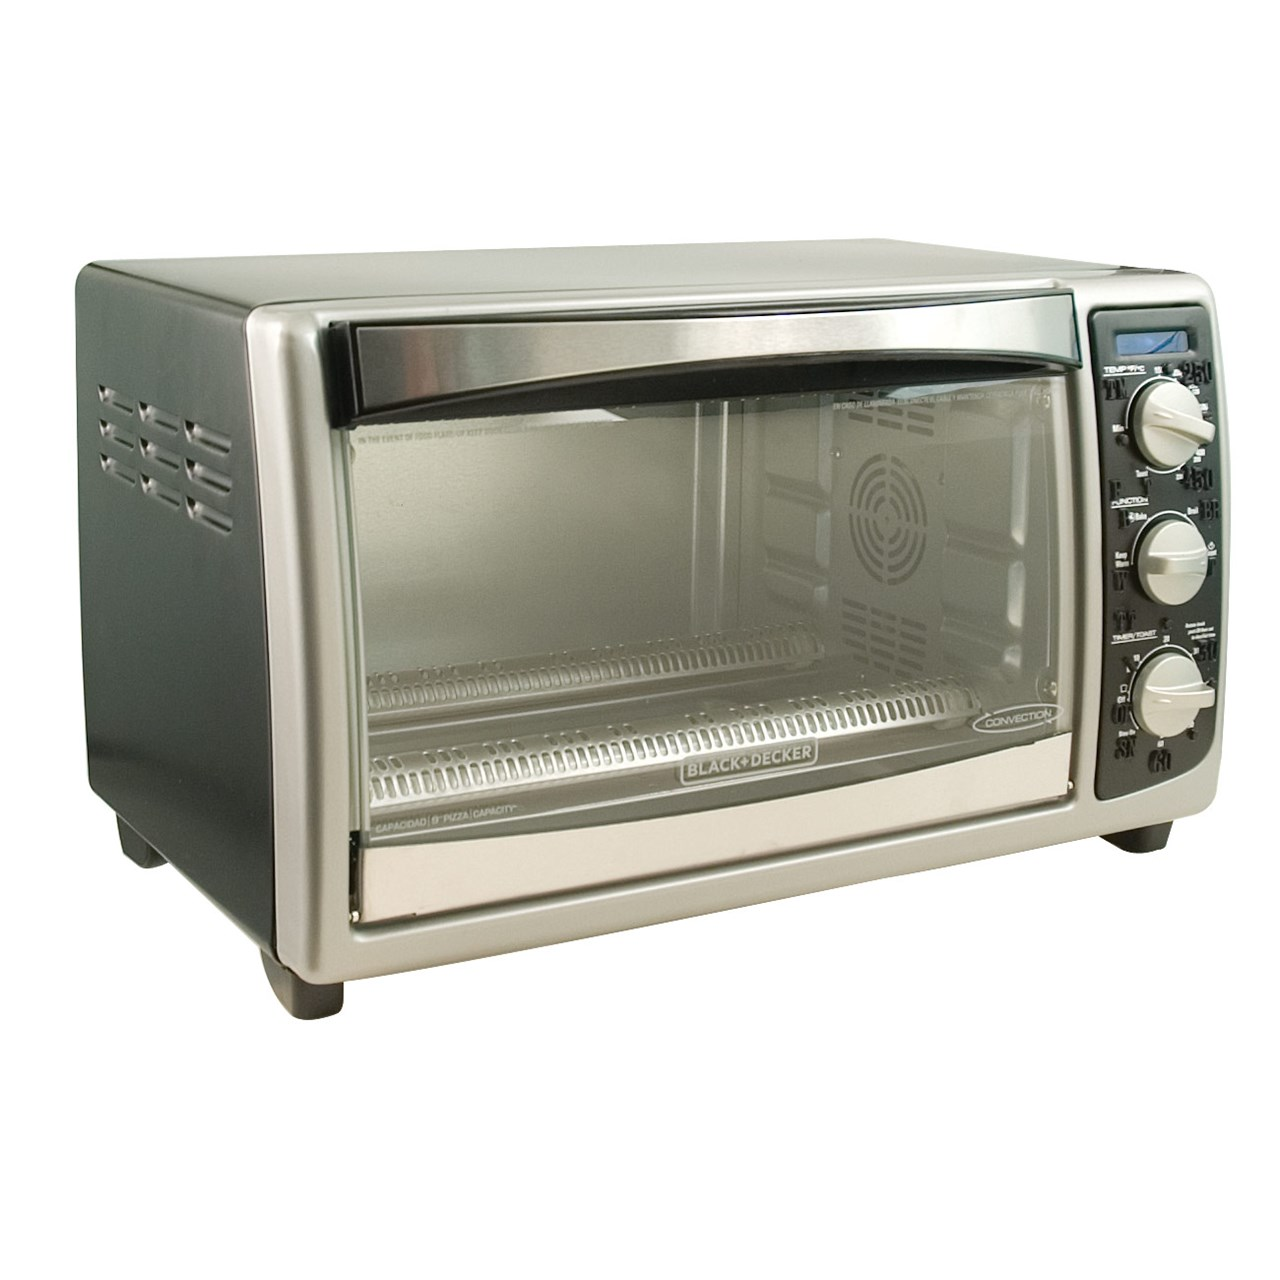 m toaster ovens oven norman kitchen ems singapore imageexternal appliances cooking electrolux with microwave harvey